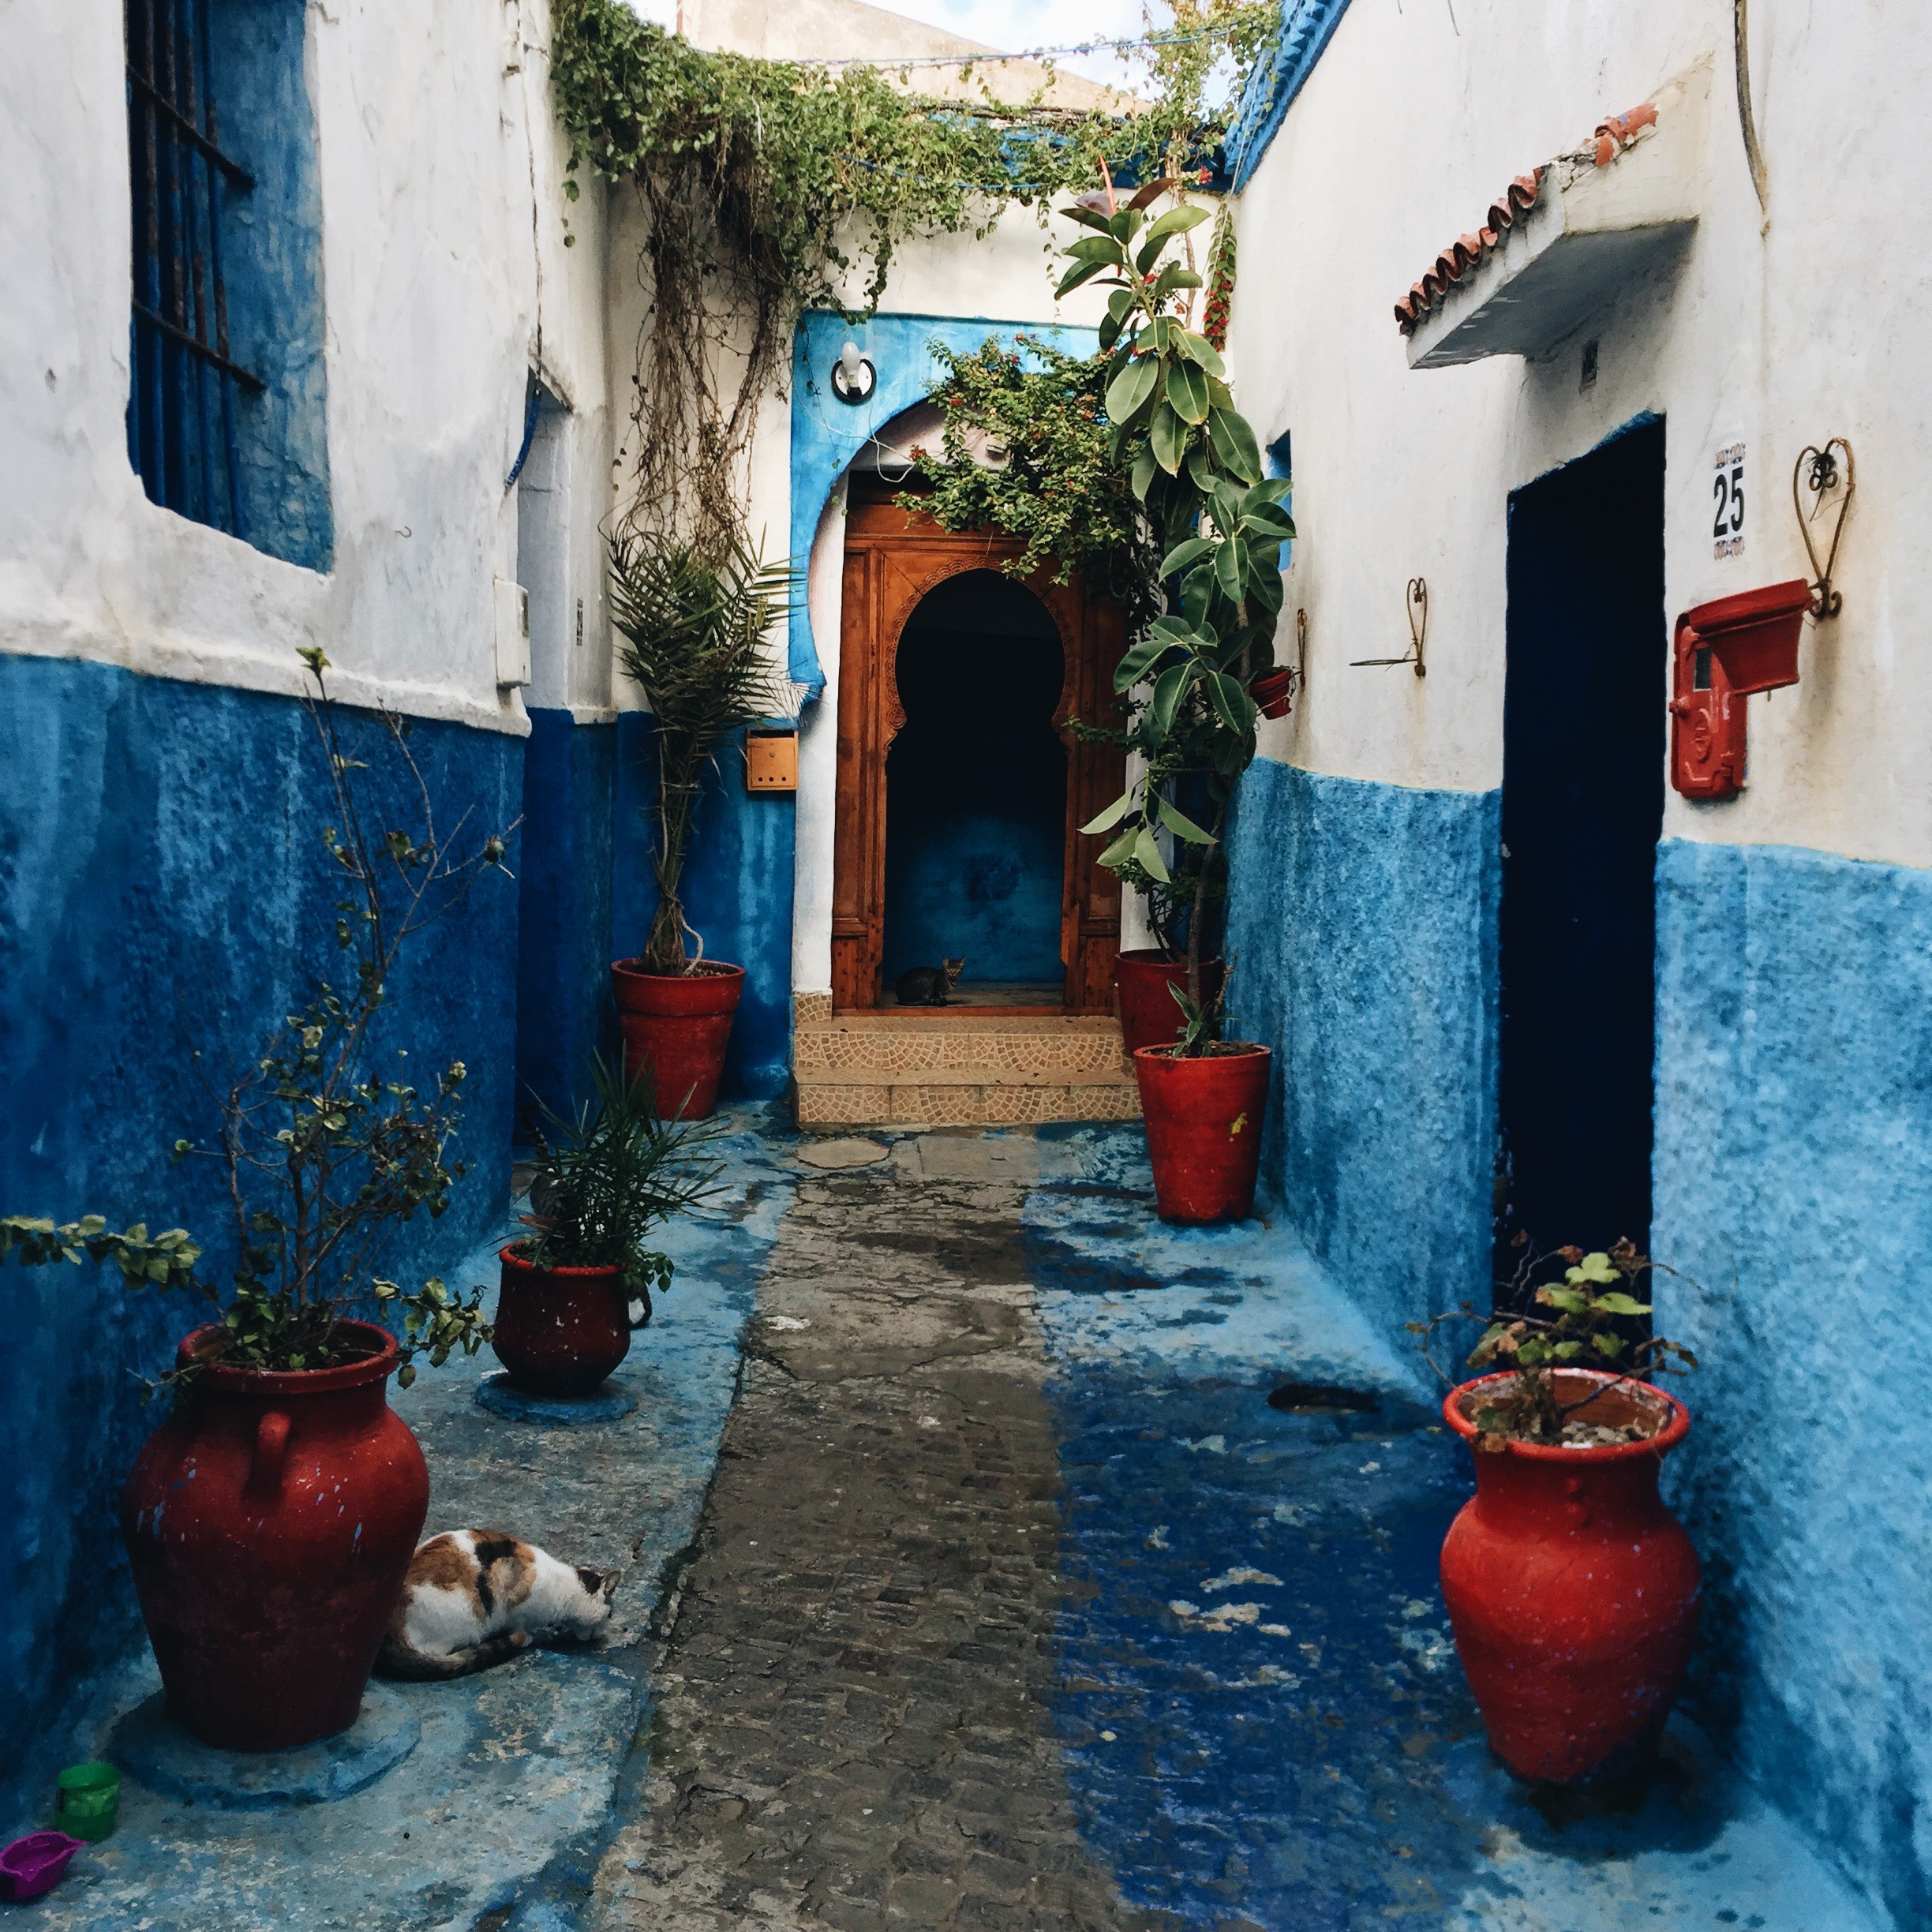 Quiet alleyway in the k asbah  - or fortified old town - of Rabat, the current political capital.